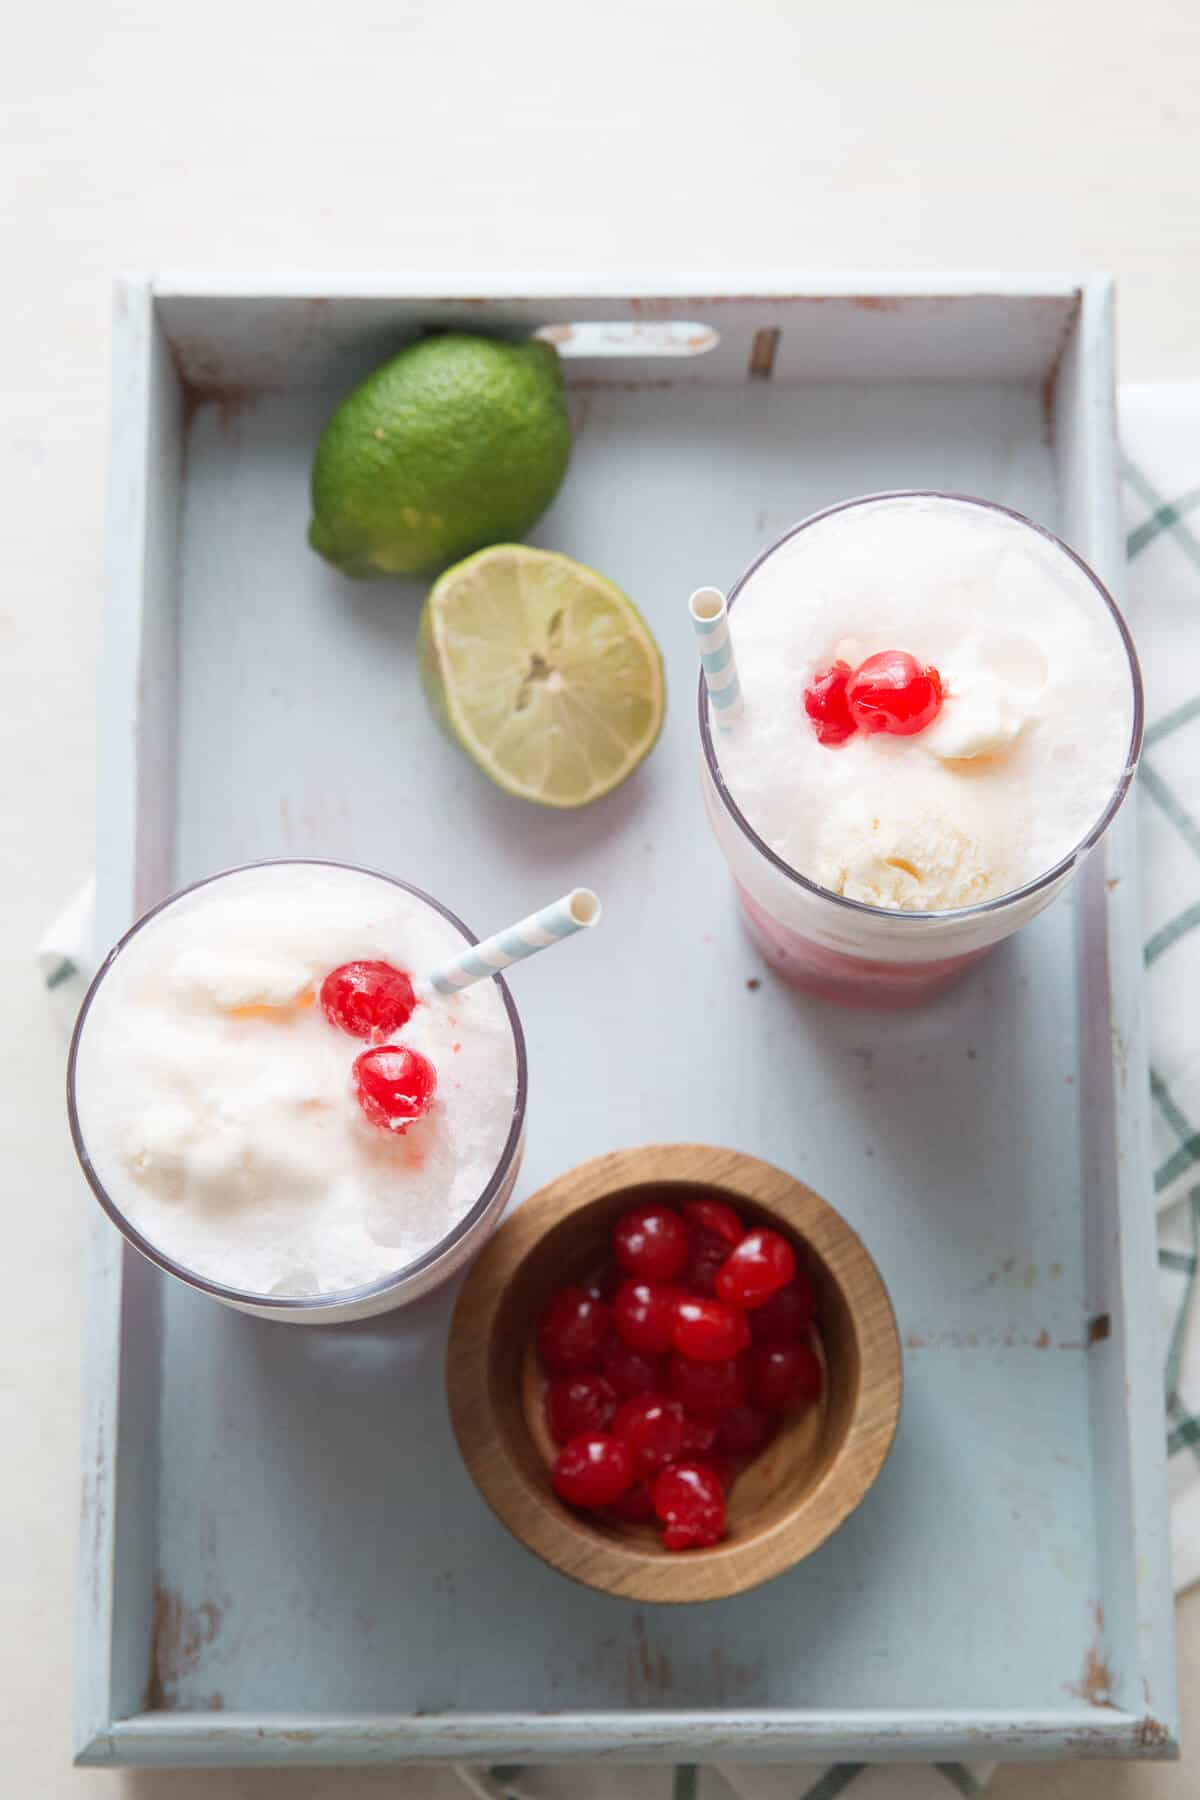 Cherry limeade floats will keep you cool on those hot days. This is fun, sweet and unique twist on ice cream floats!